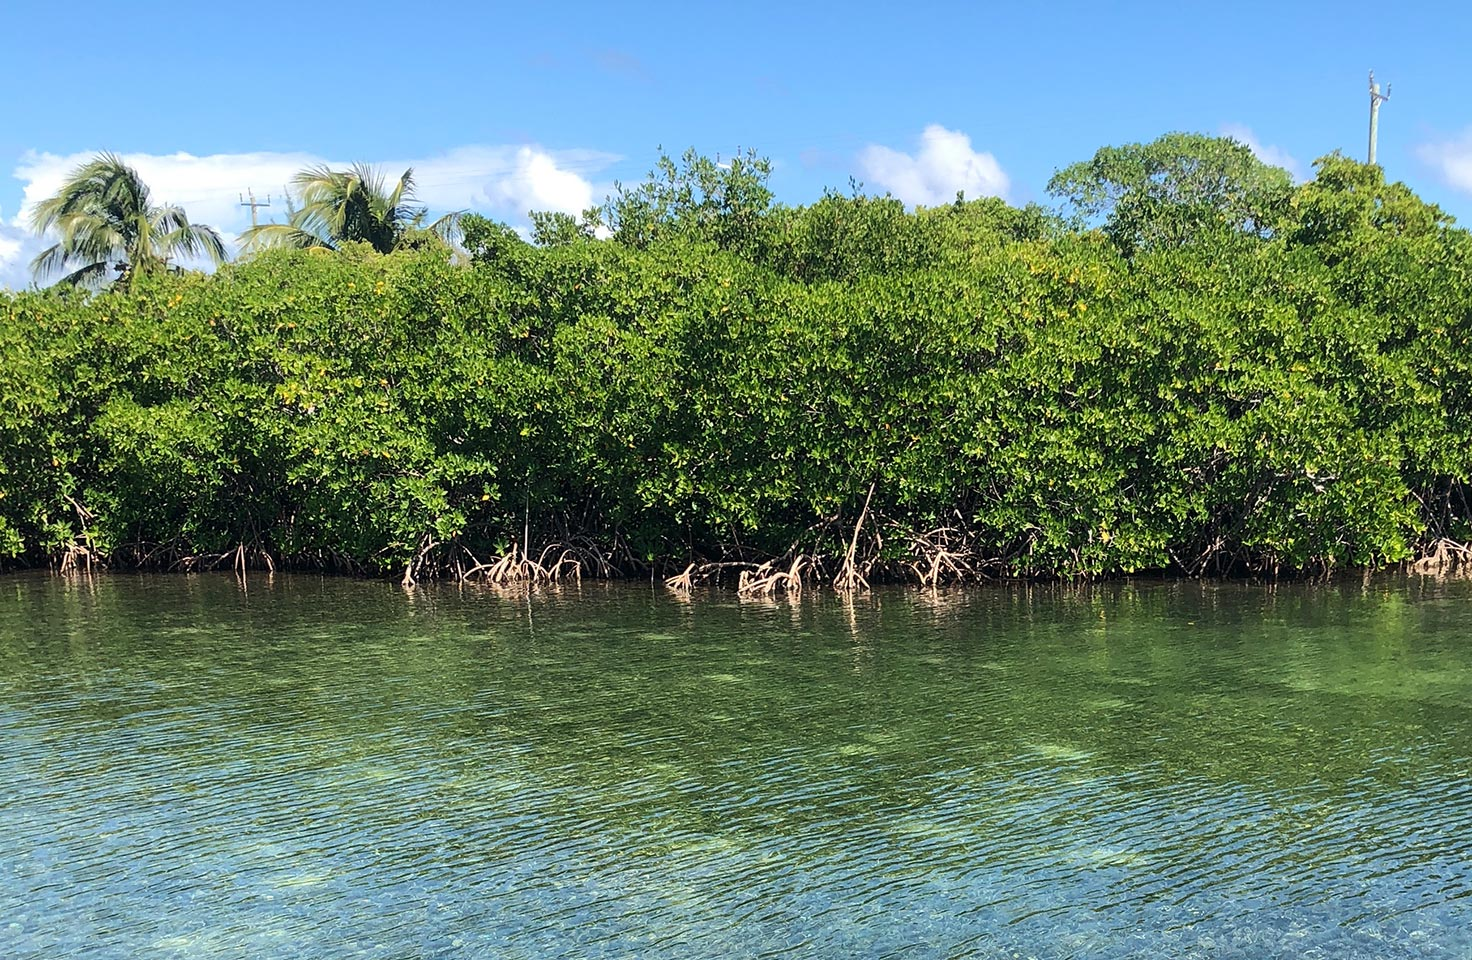 Photo of a mangrove swamp